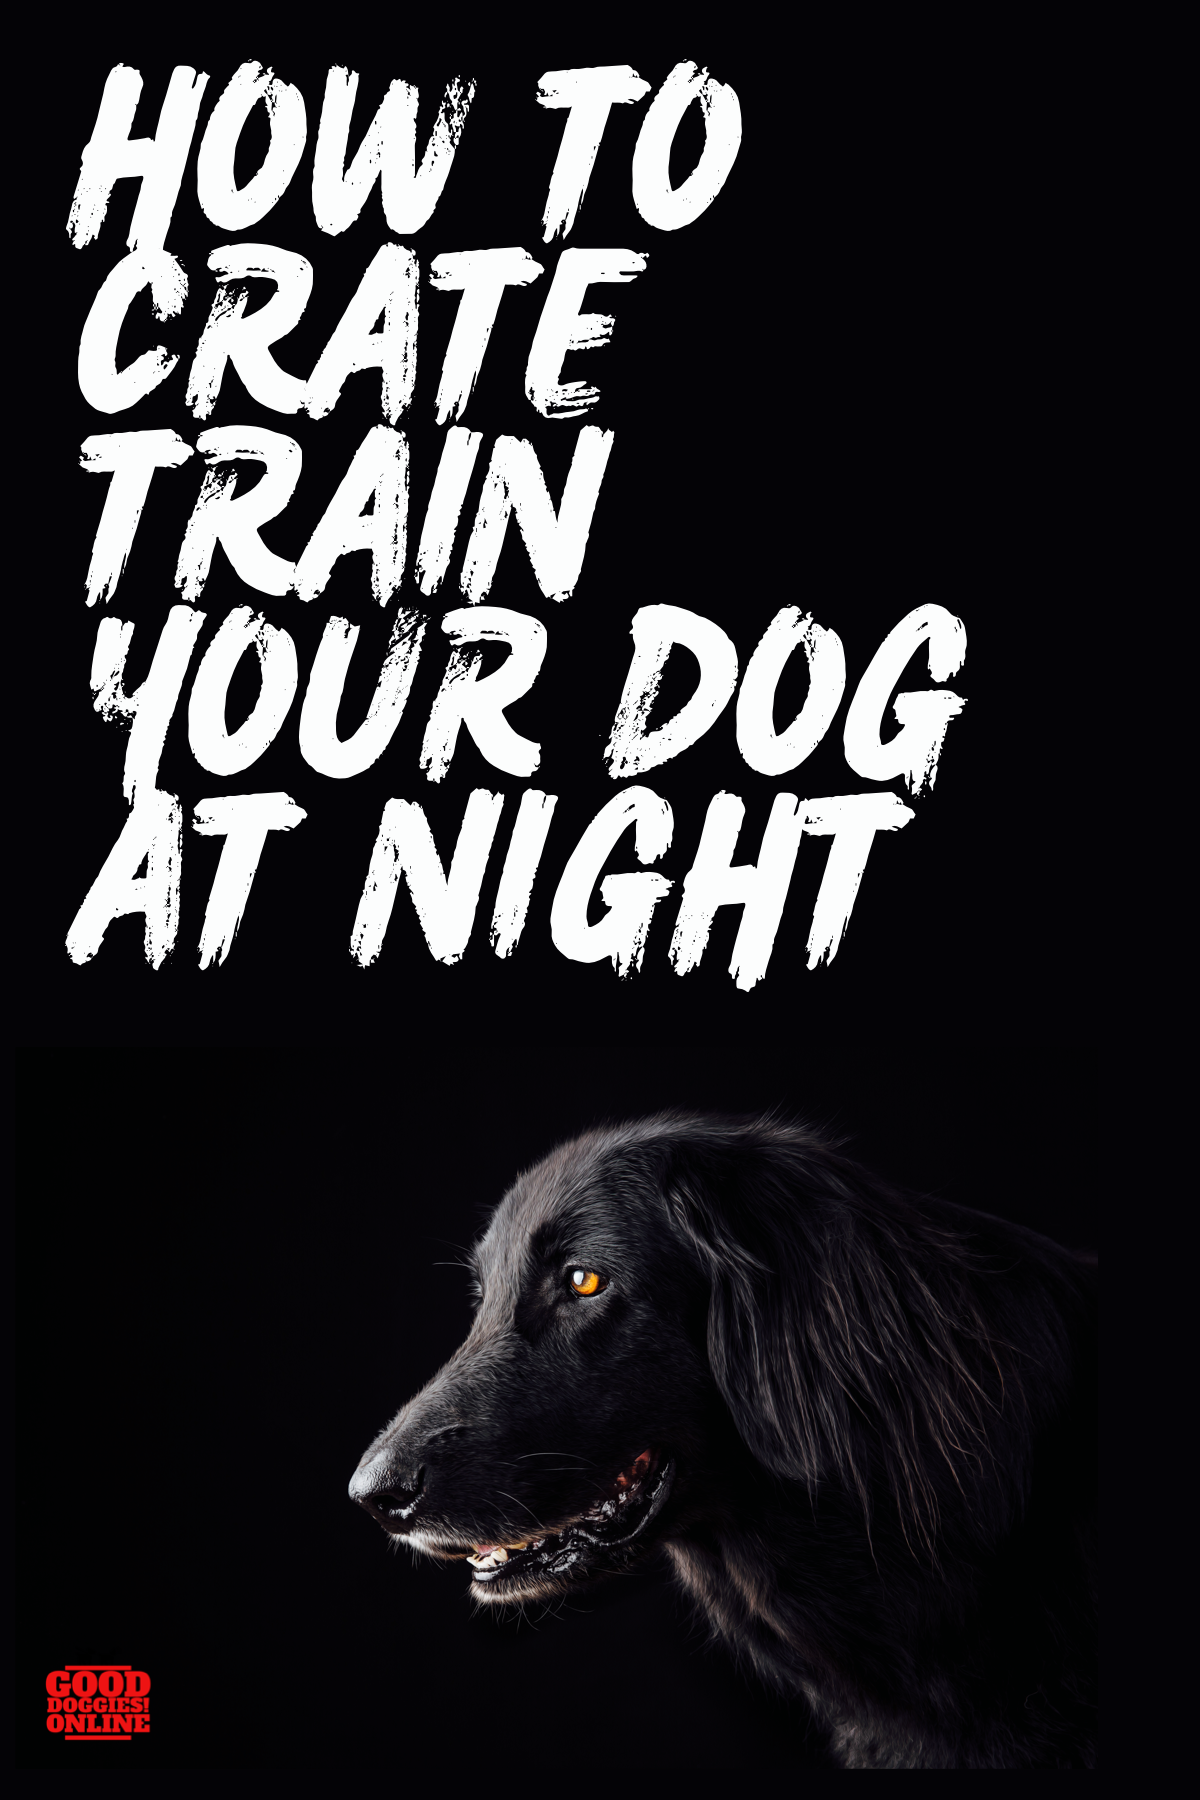 How to Crate Train a Dog at Night Big dog little dog